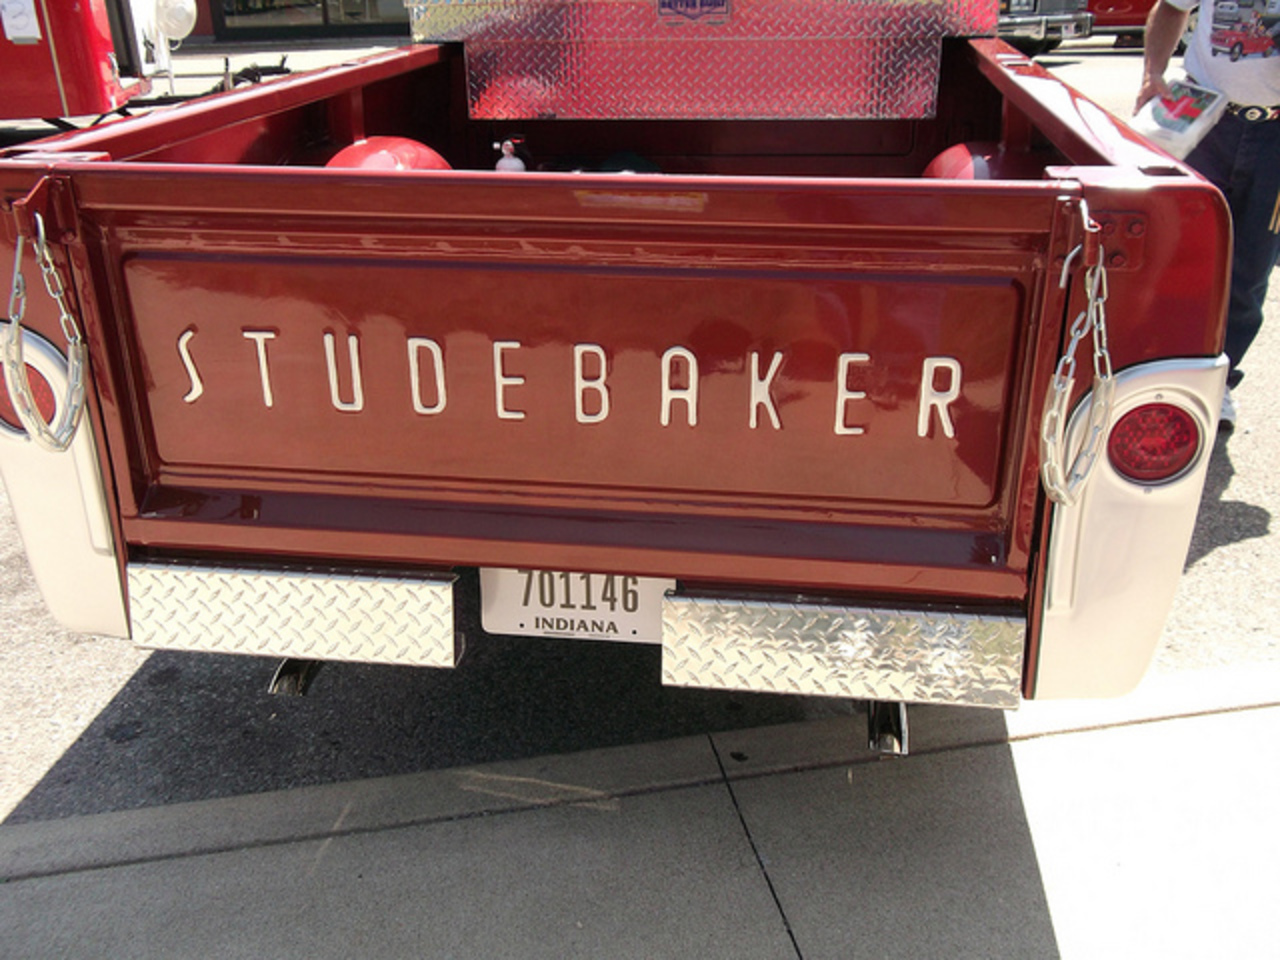 1960 Studebaker Champ truck | Flickr - Photo Sharing!